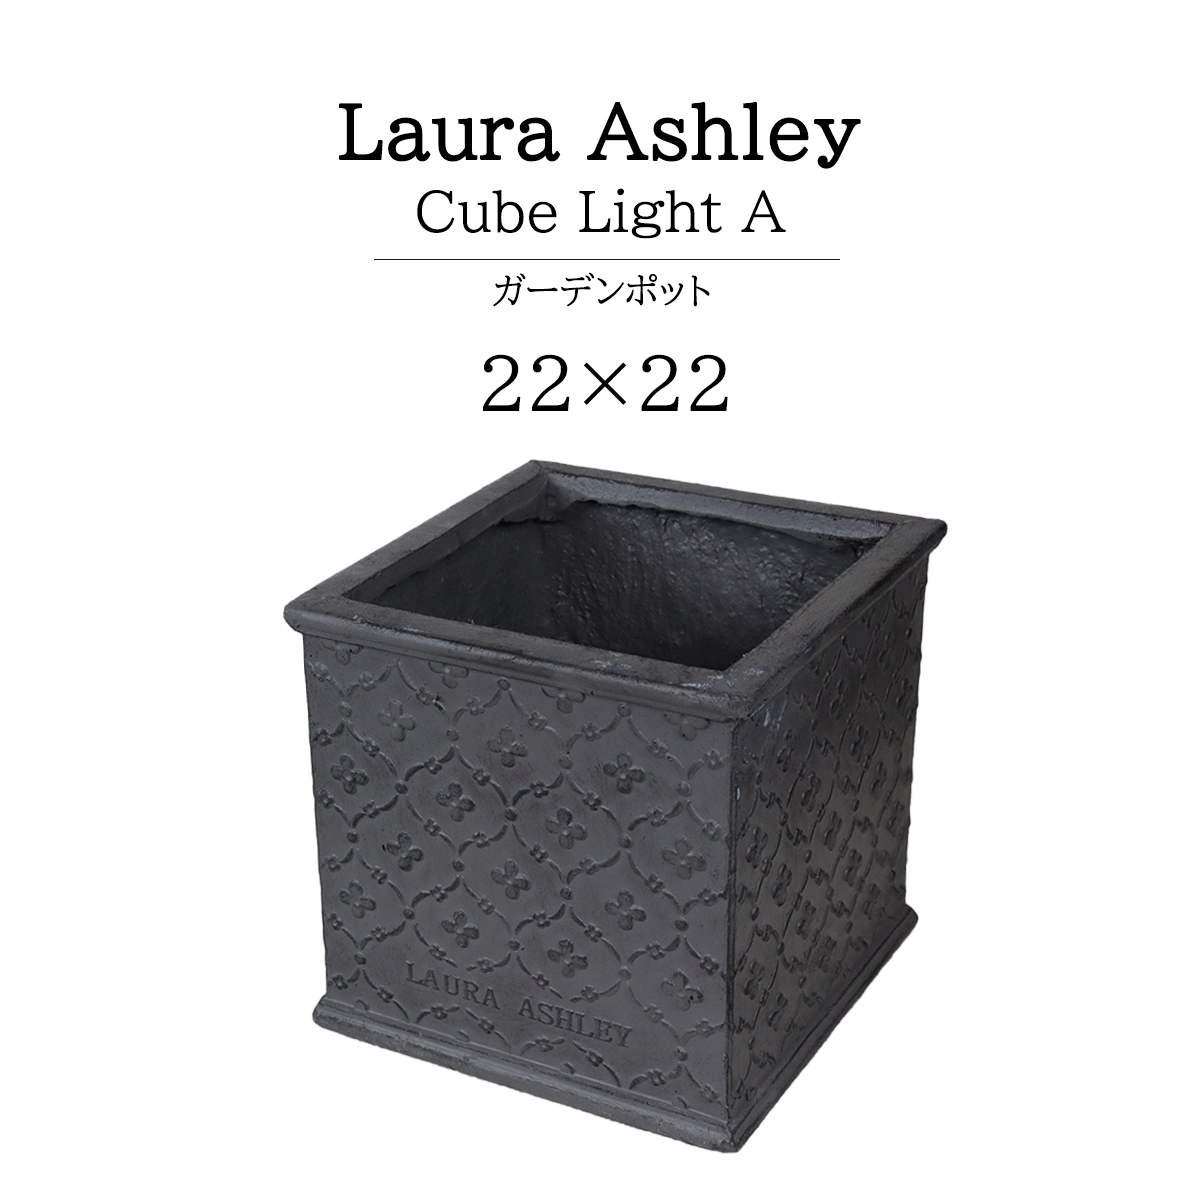 lauraashliey cube light A S